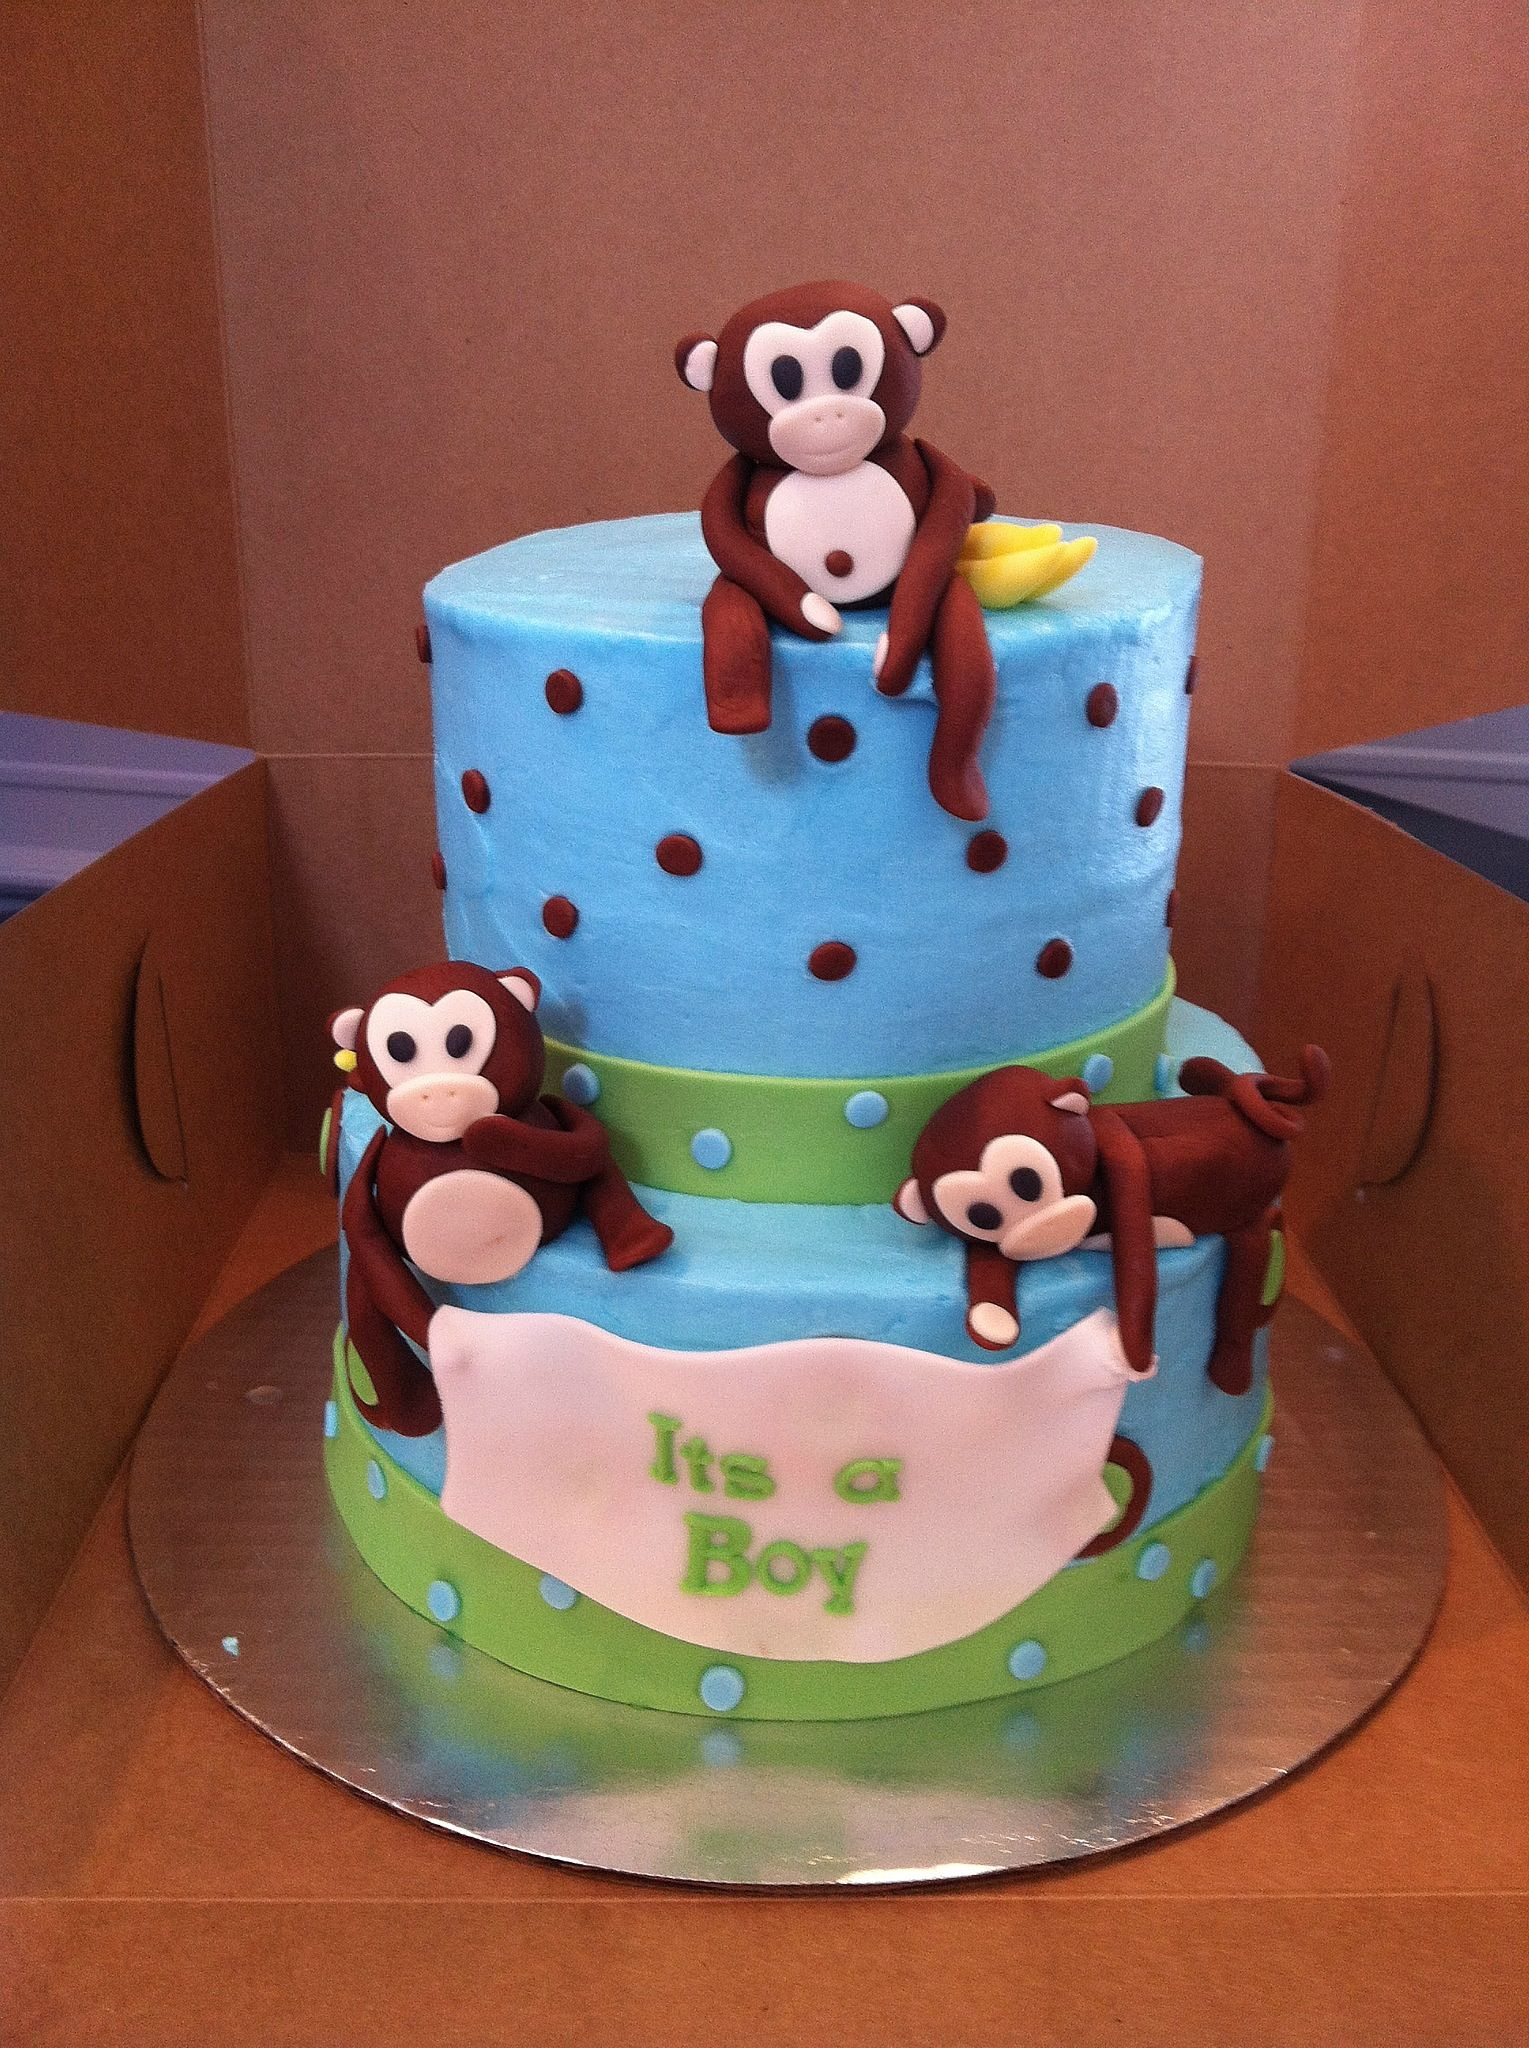 Monkey baby shower cakes cupcakes pinterest - Baby shower monkey pictures ...